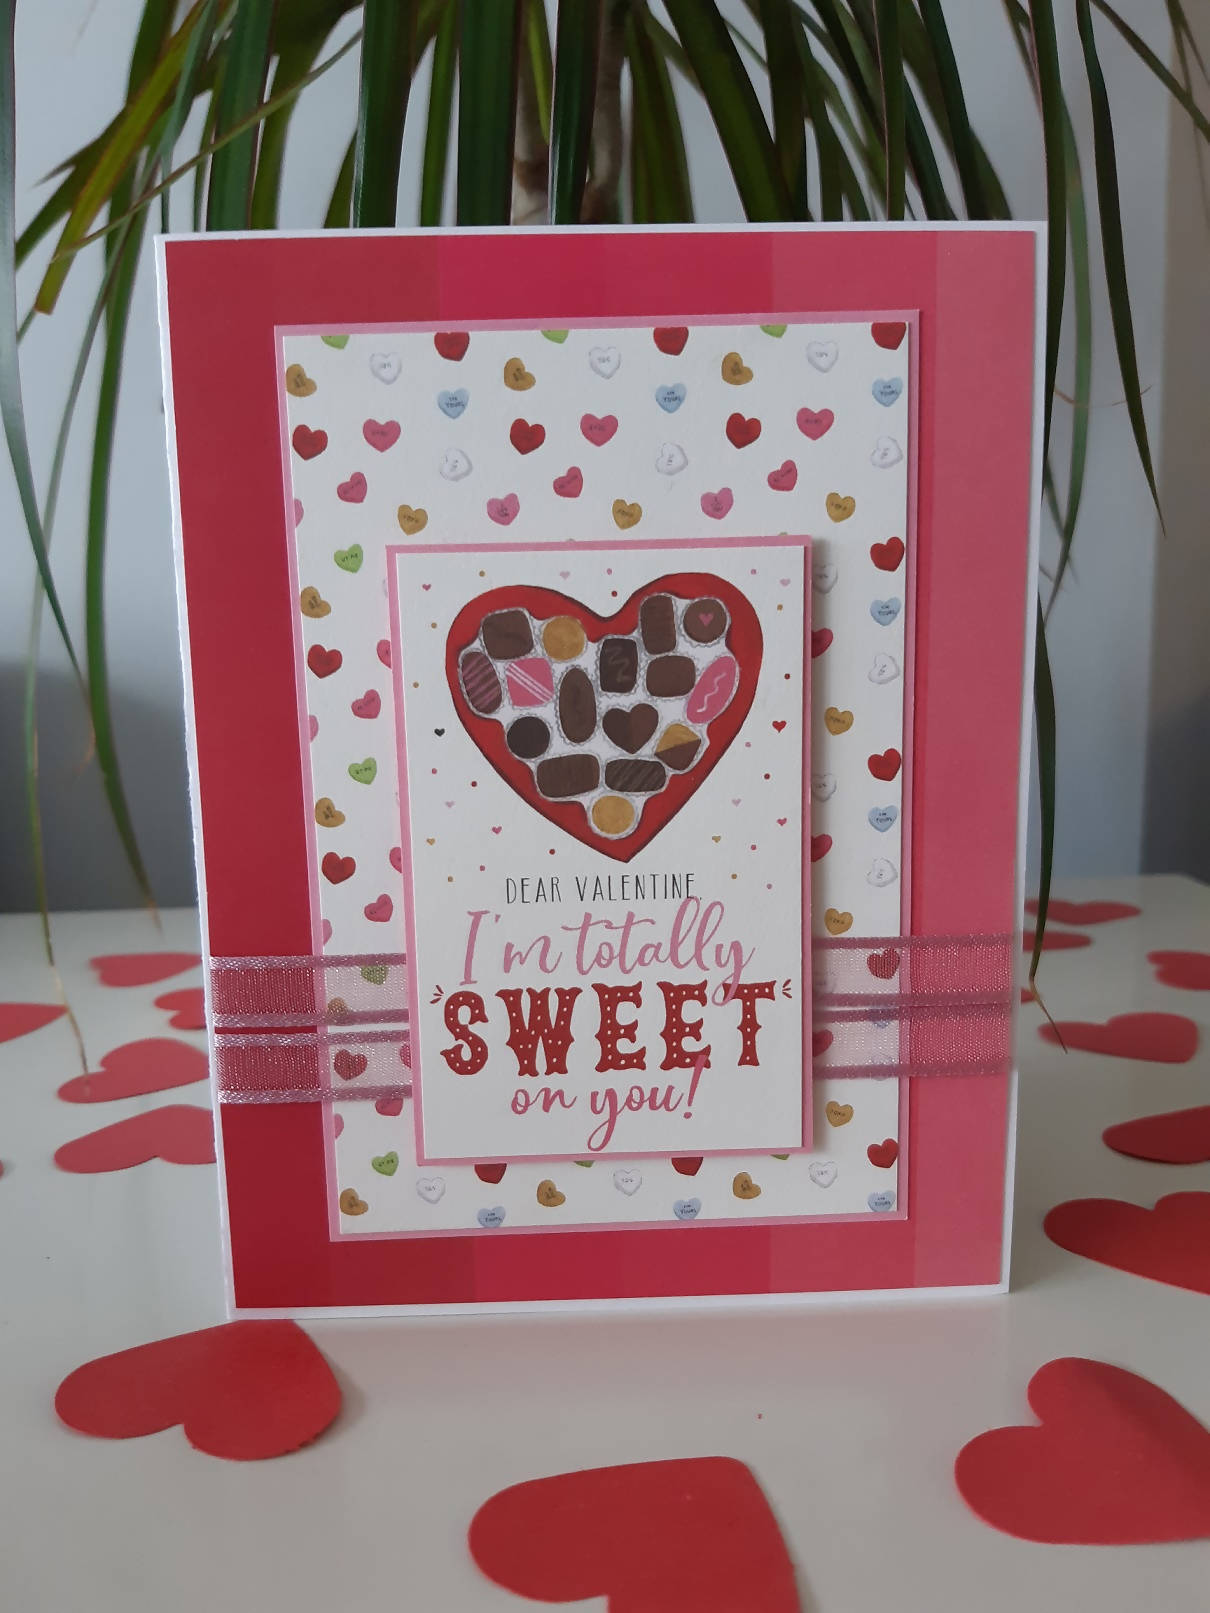 Sweet on you - Greeting card